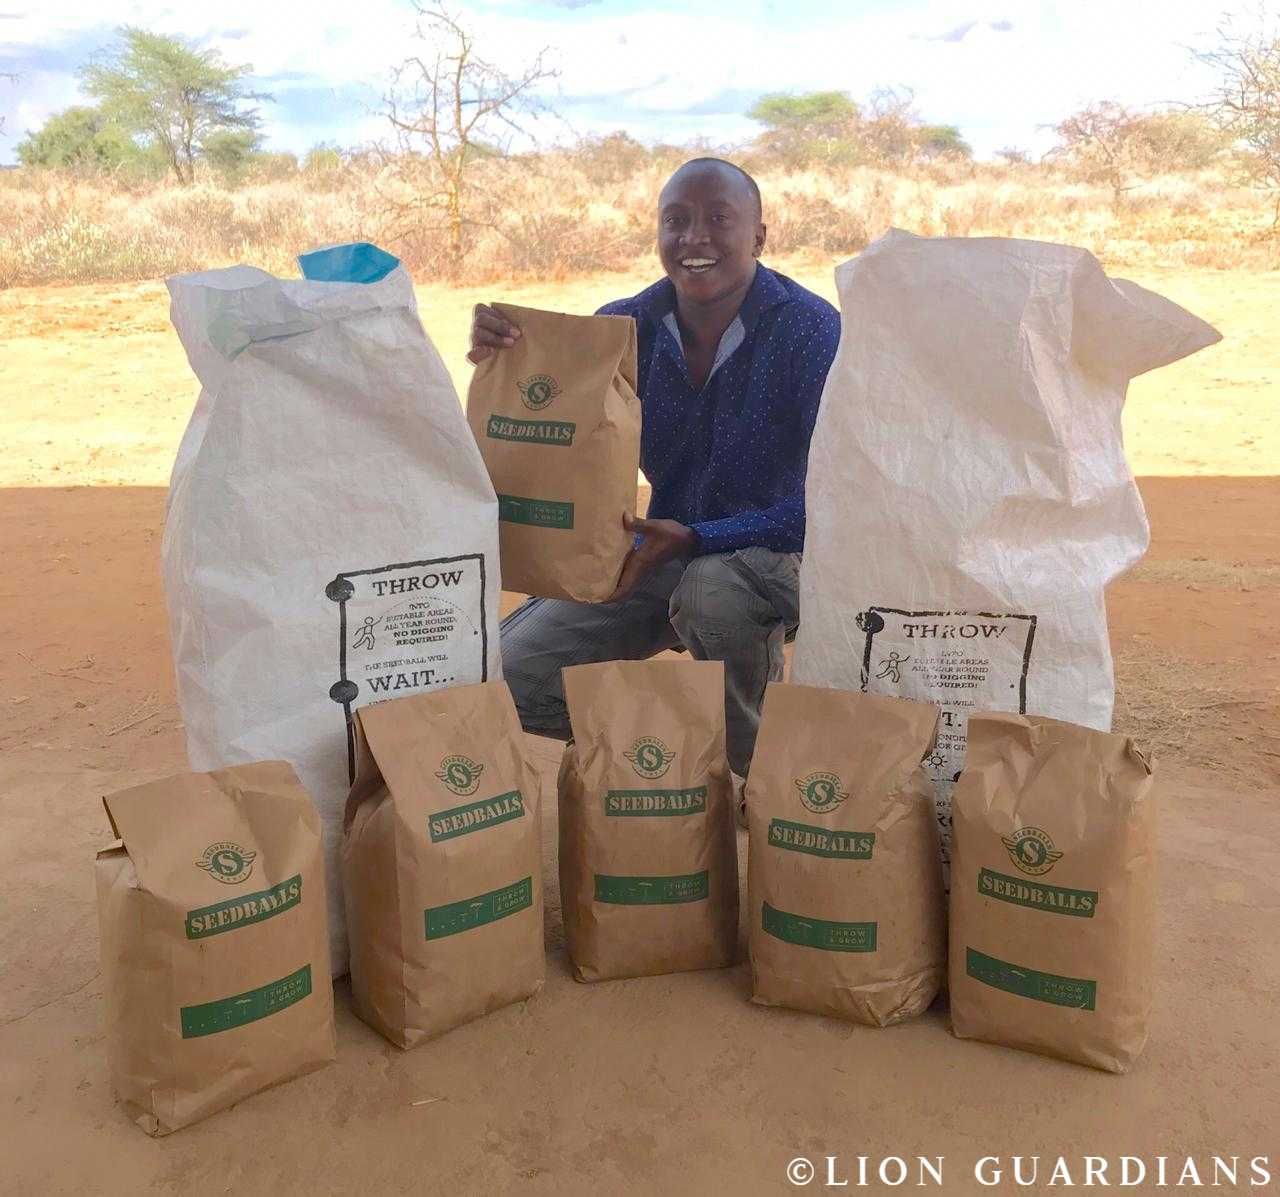 We offered seedballs to the Lion Guardians organisation in Kenya